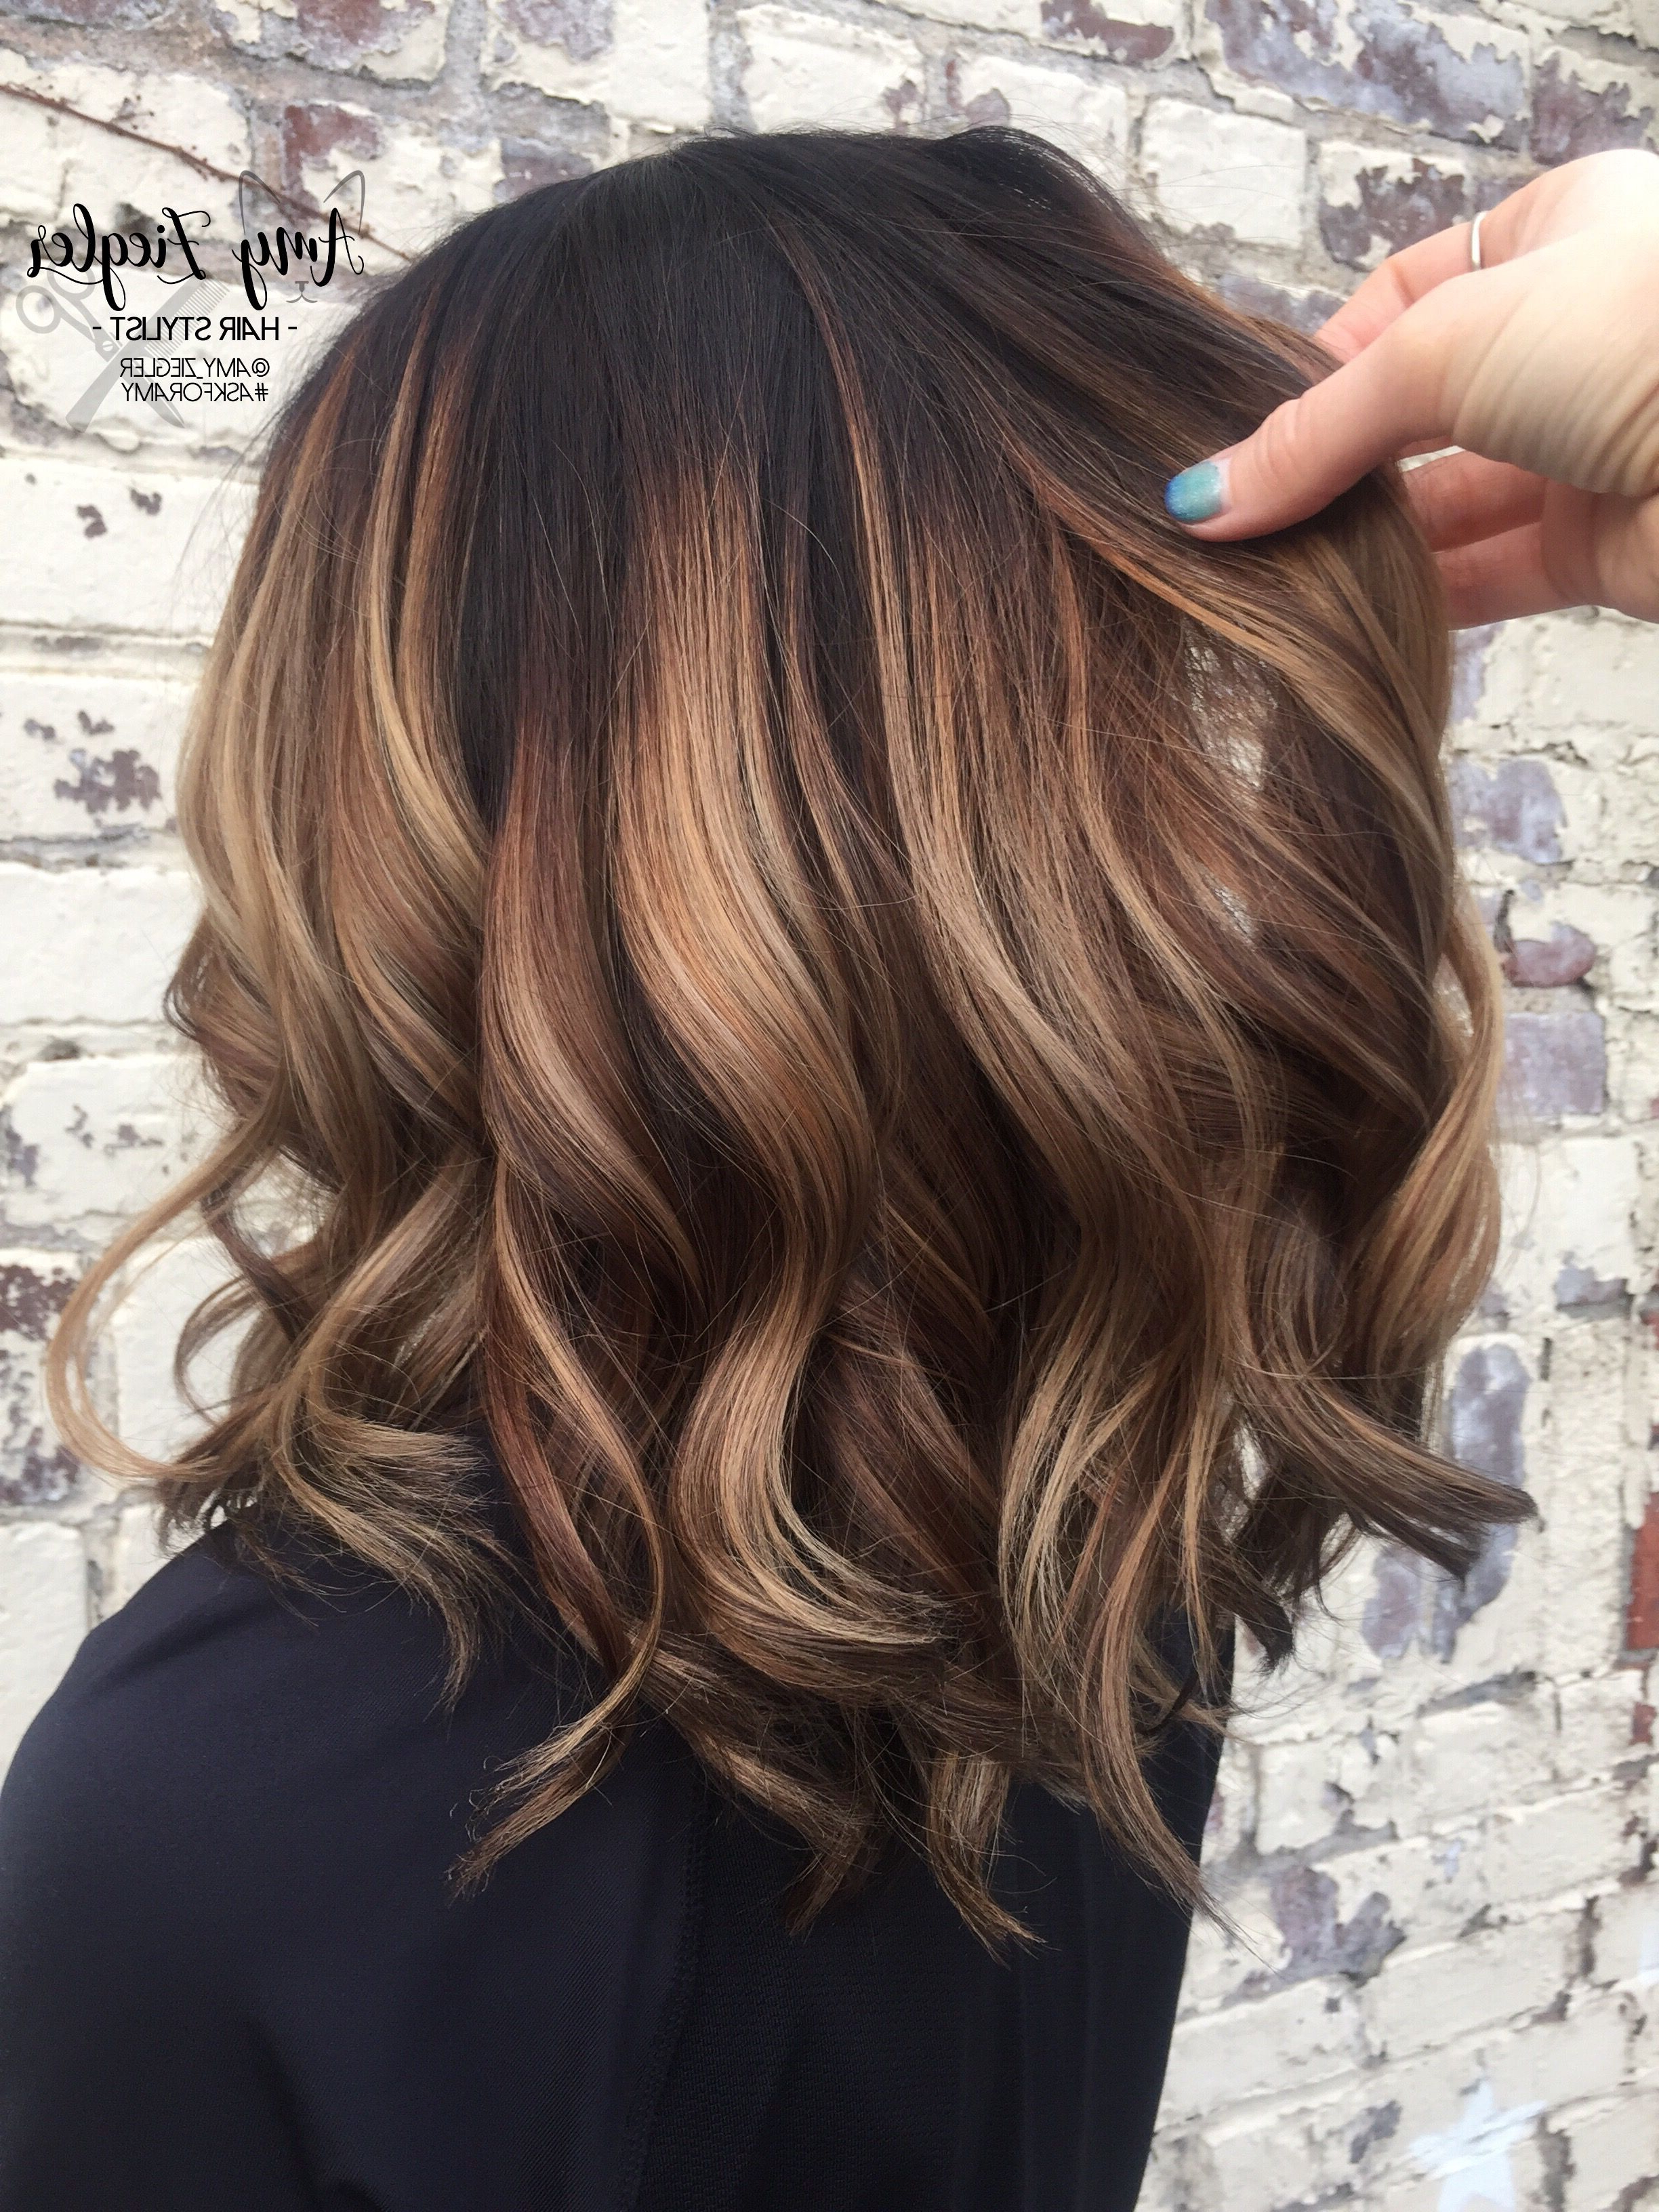 Image Result For Balayage   Hair In 2018   Pinterest   Hair Inside Short Hairstyles With Balayage (View 16 of 25)